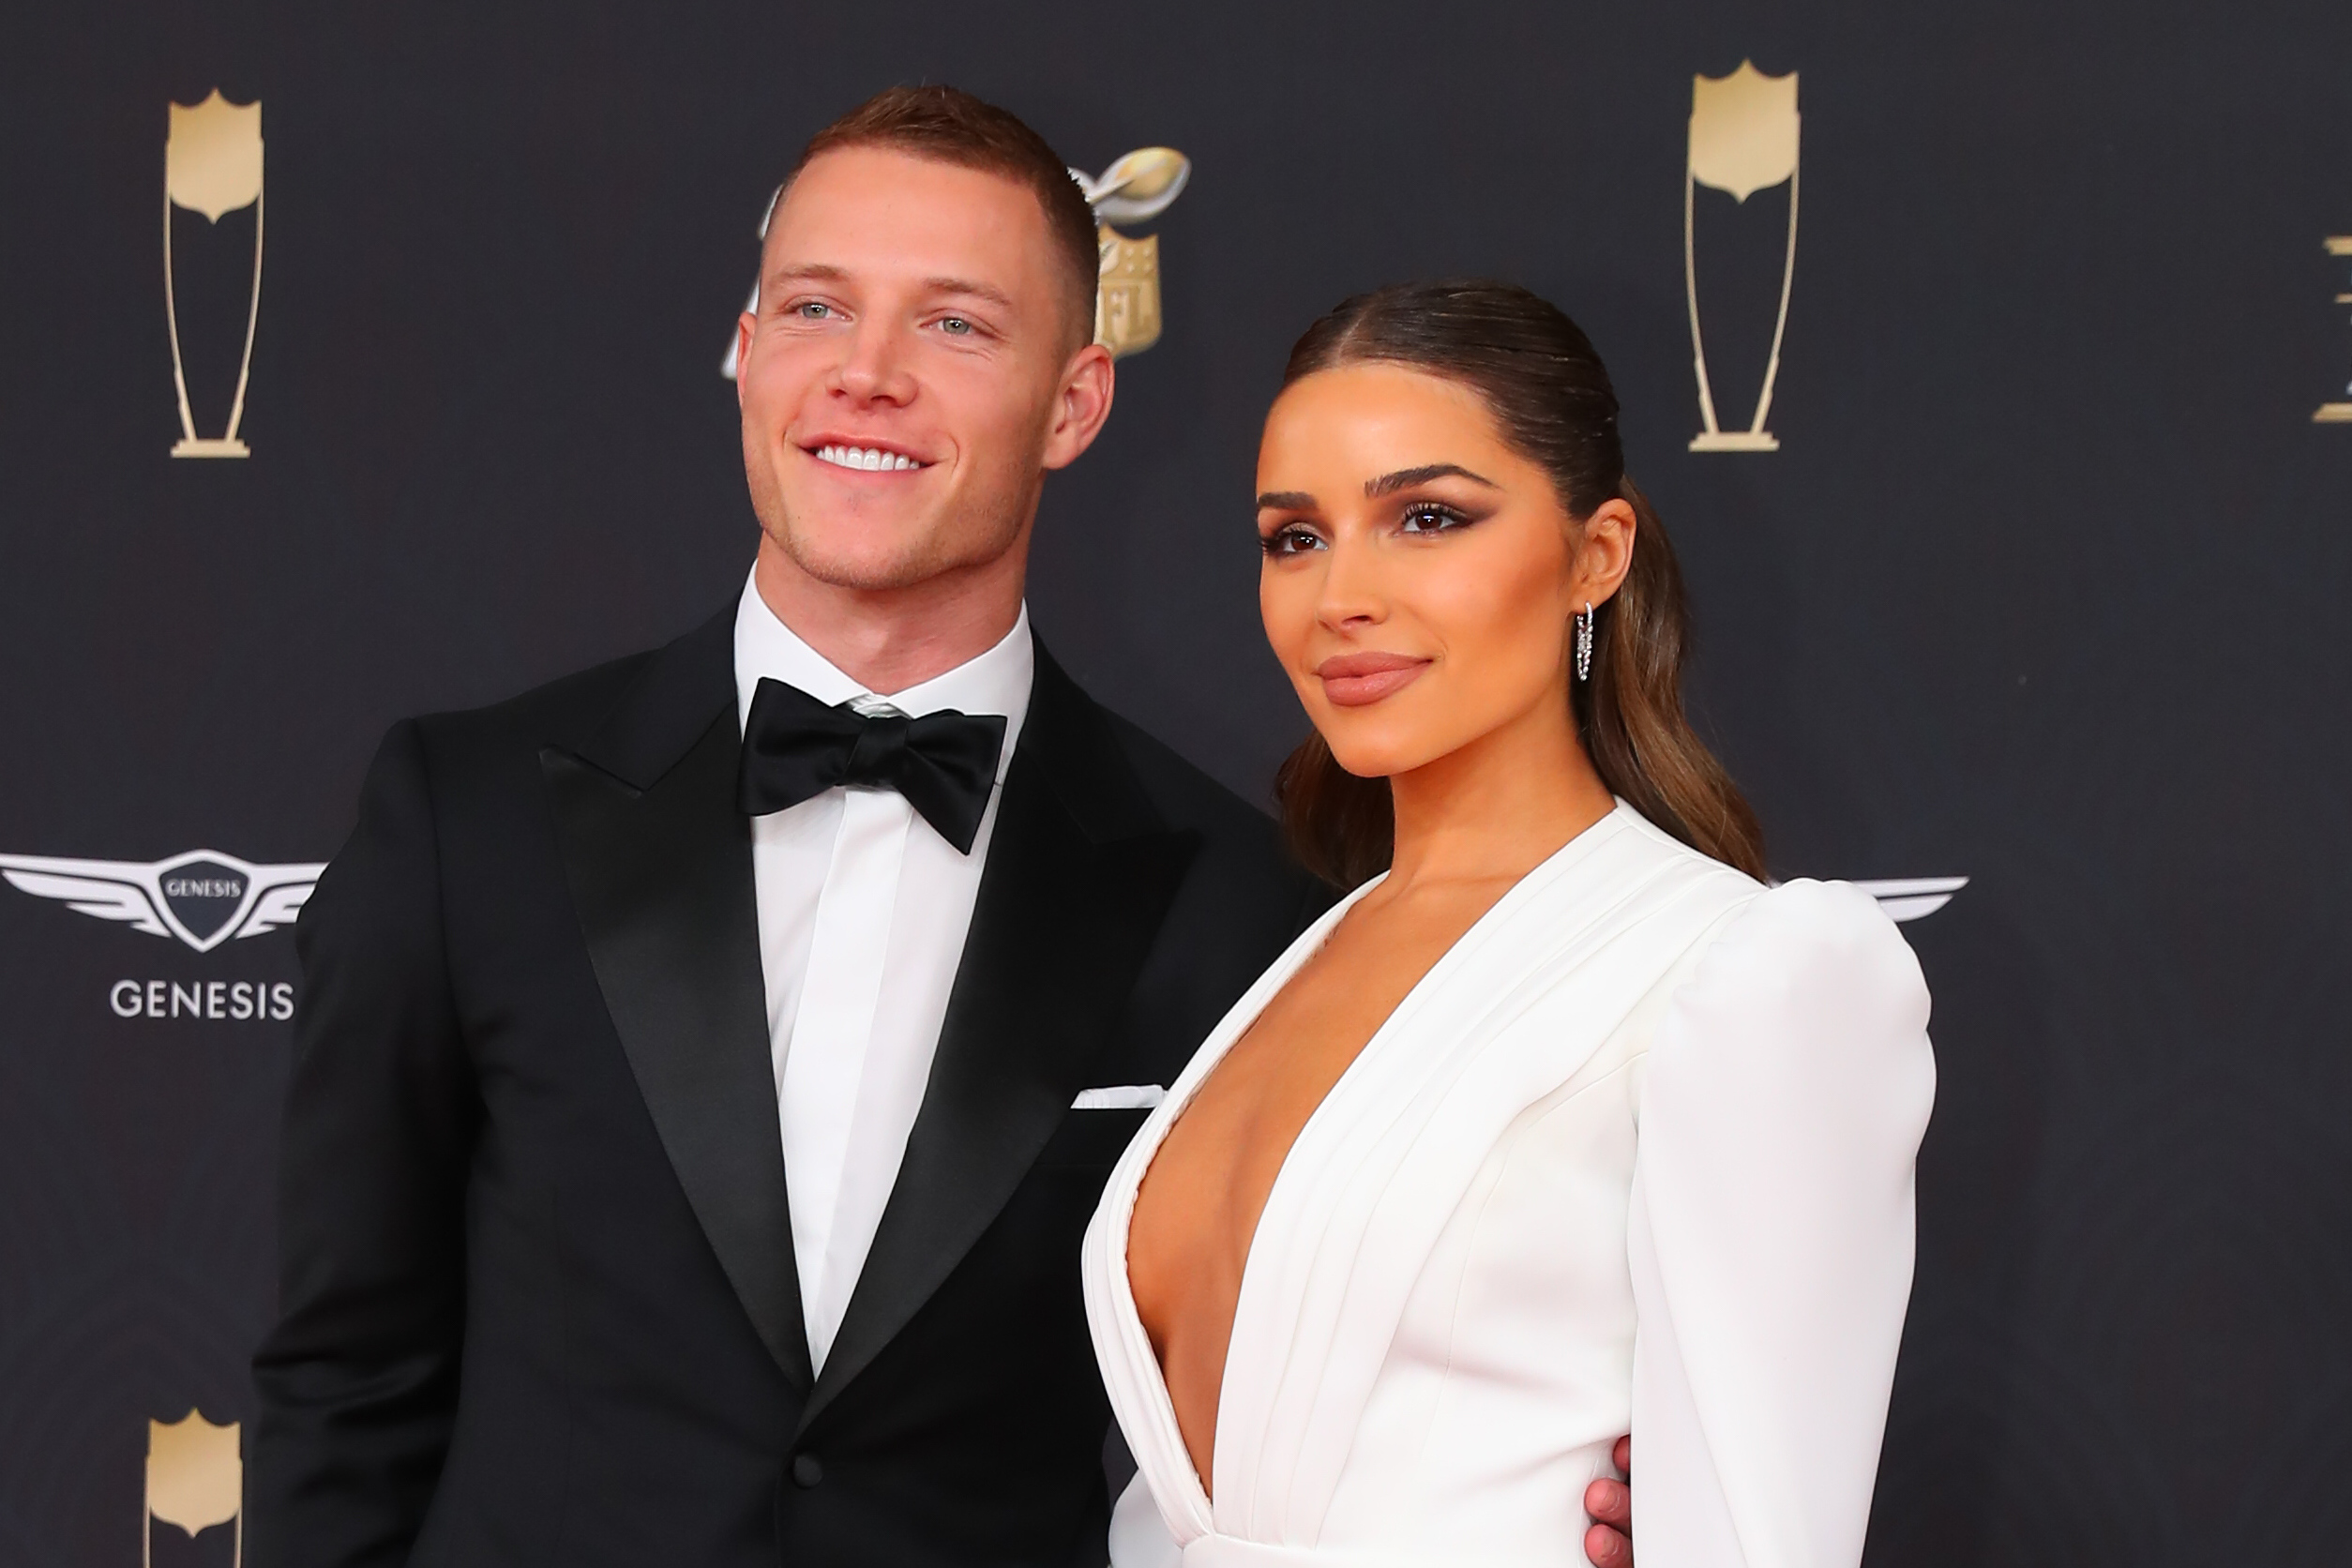 Christian McCaffrey's girlfriend Olivia Culpo is on the cover of Sports Illustrated Swimsuit Issue